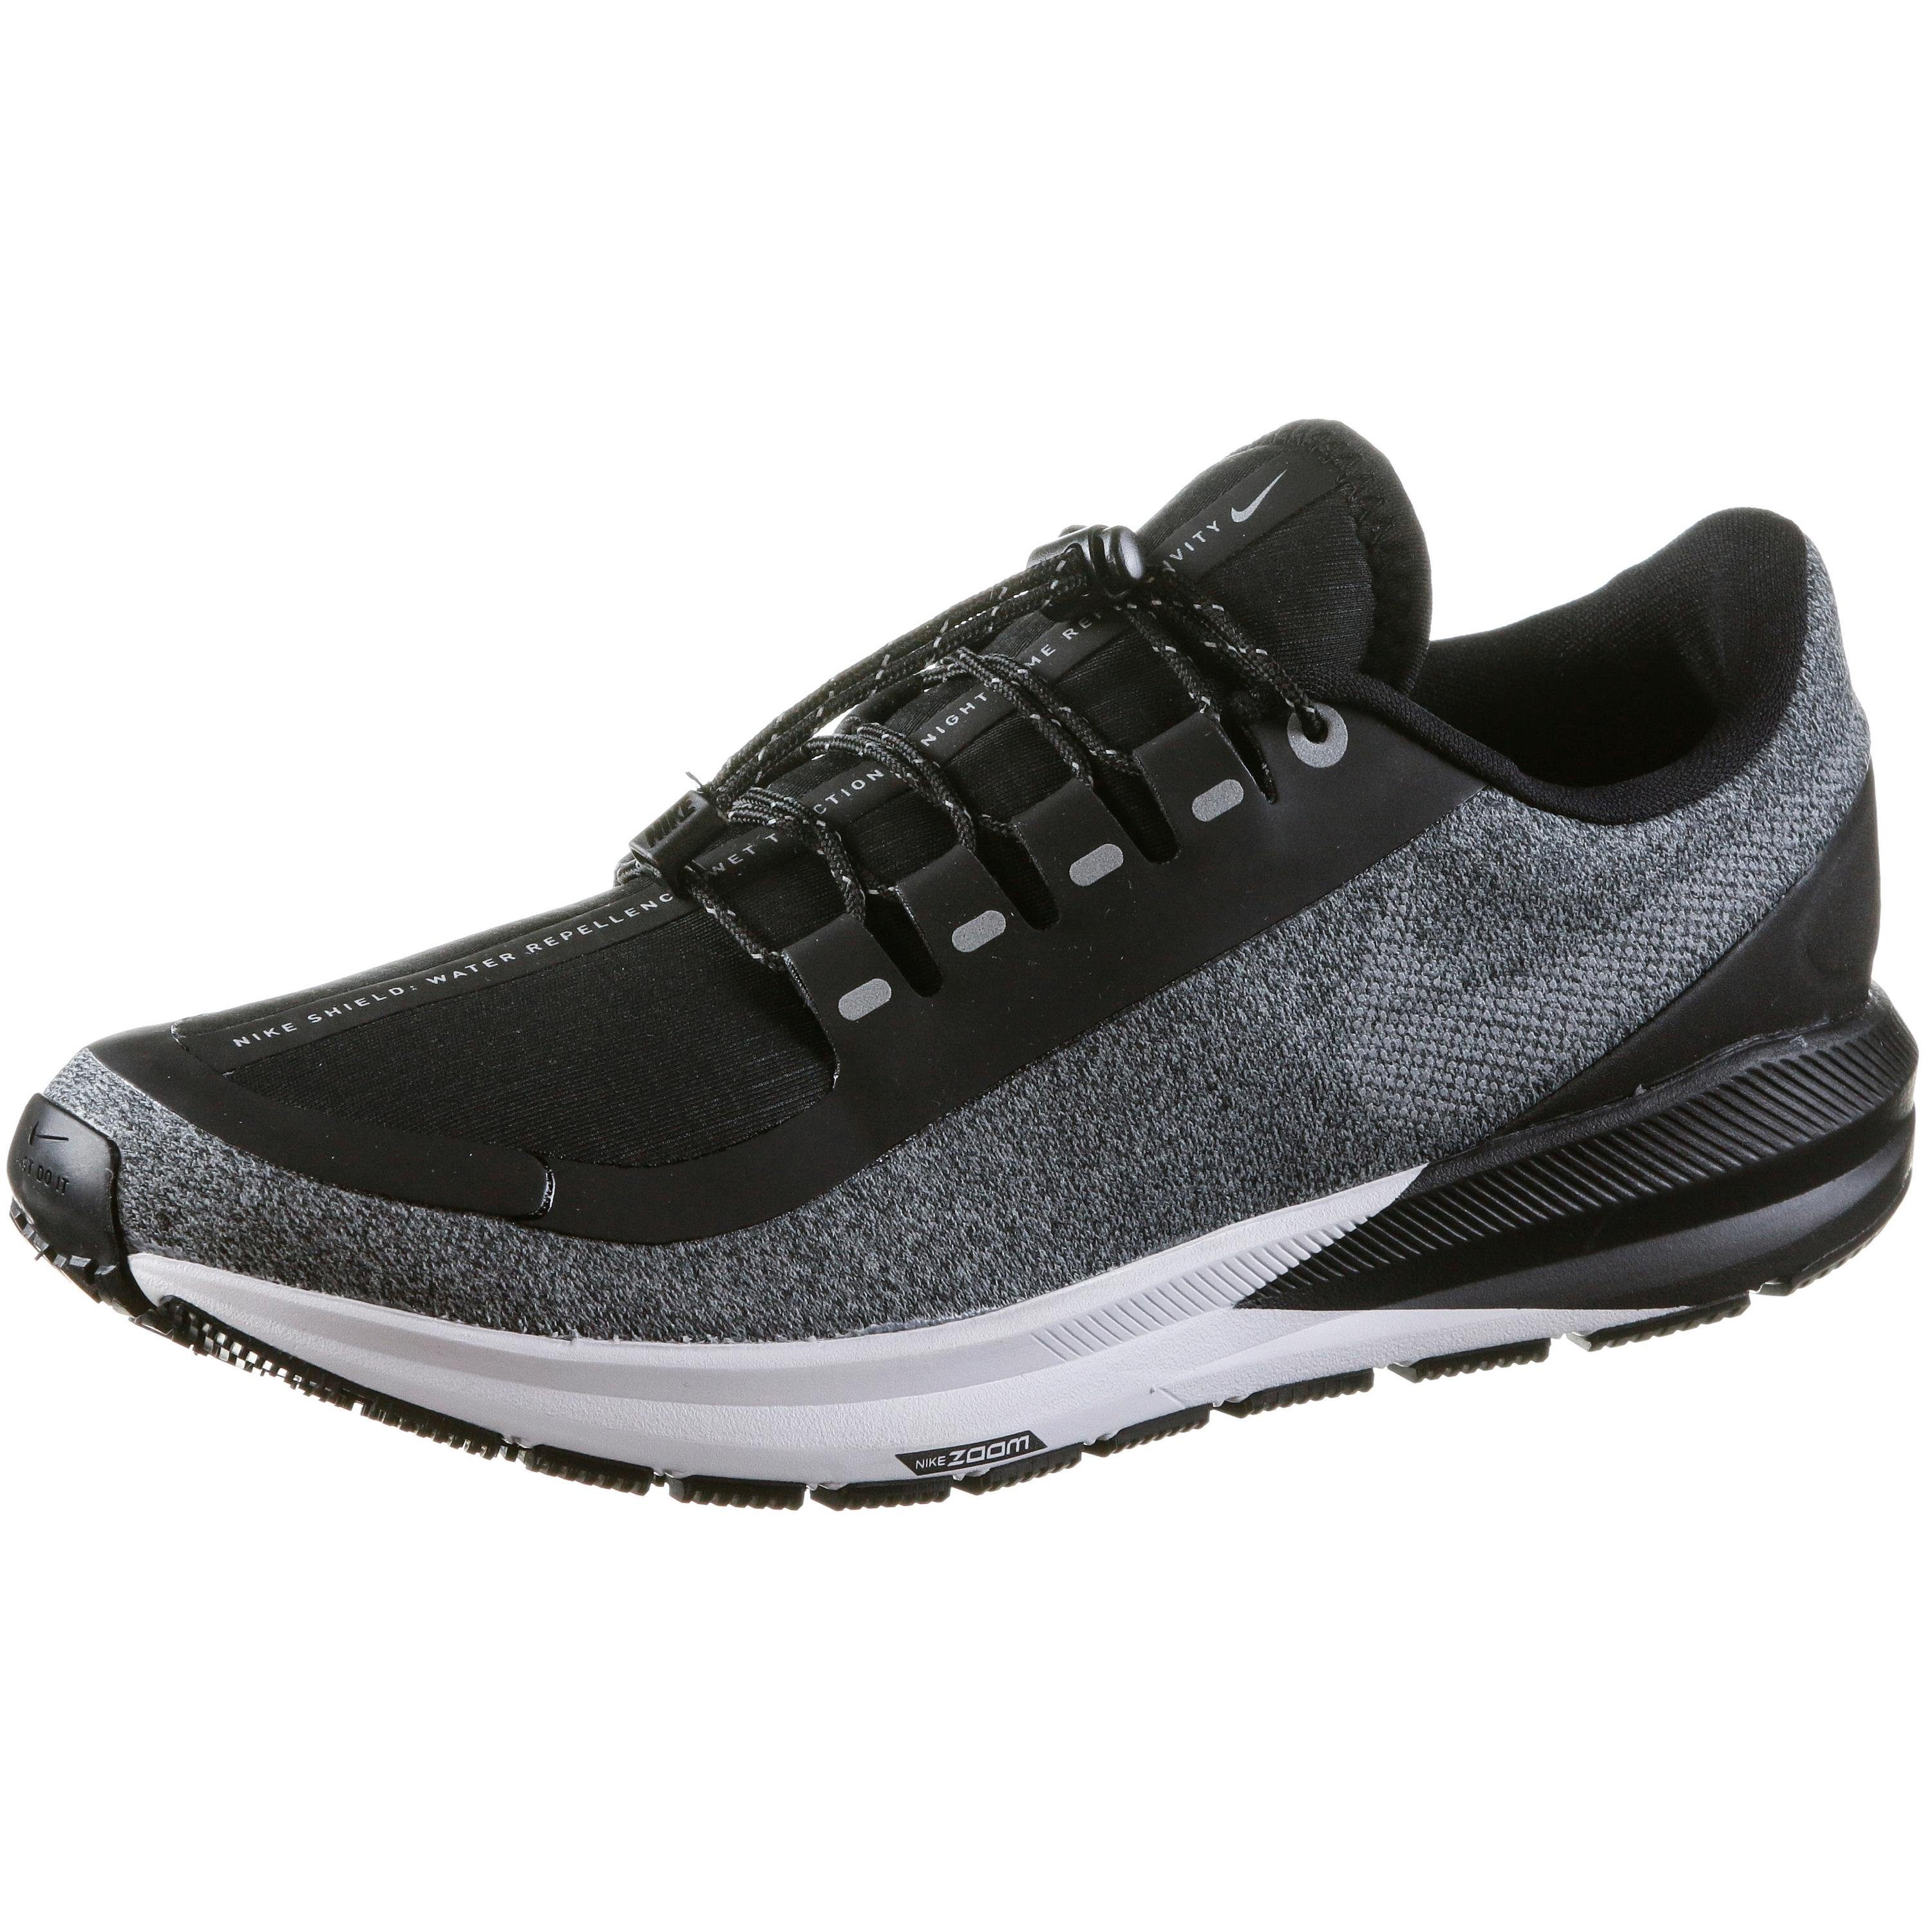 Nike »Air Zoom Structure 22 Shield« Laufschuh   OTTO